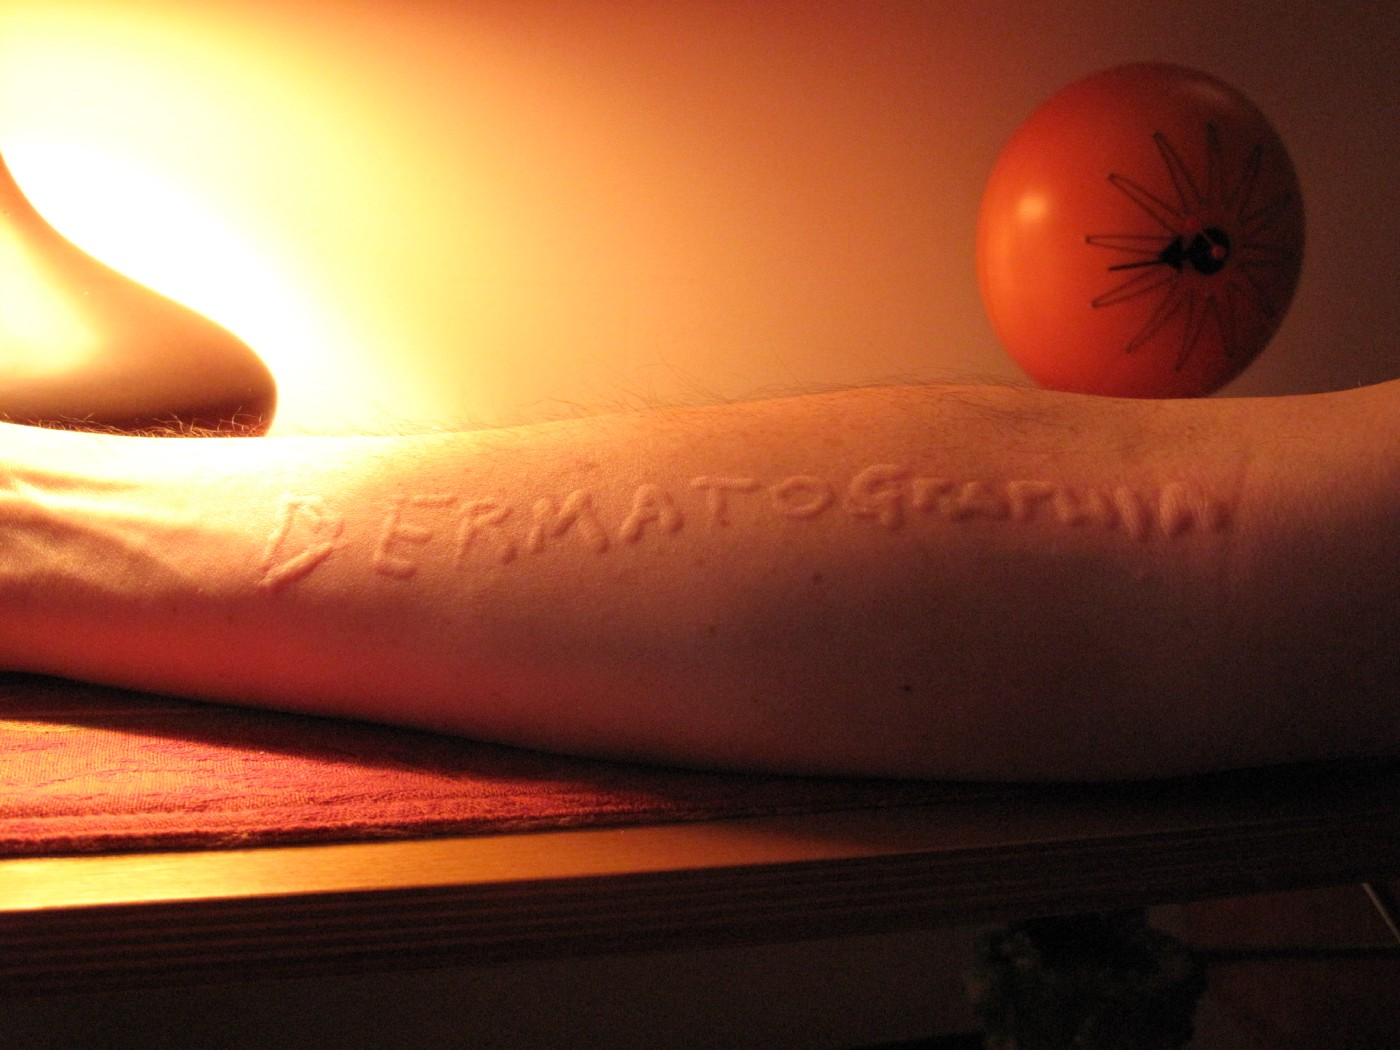 https://commons.wikimedia.org/wiki/File:Dermatographia.JPG